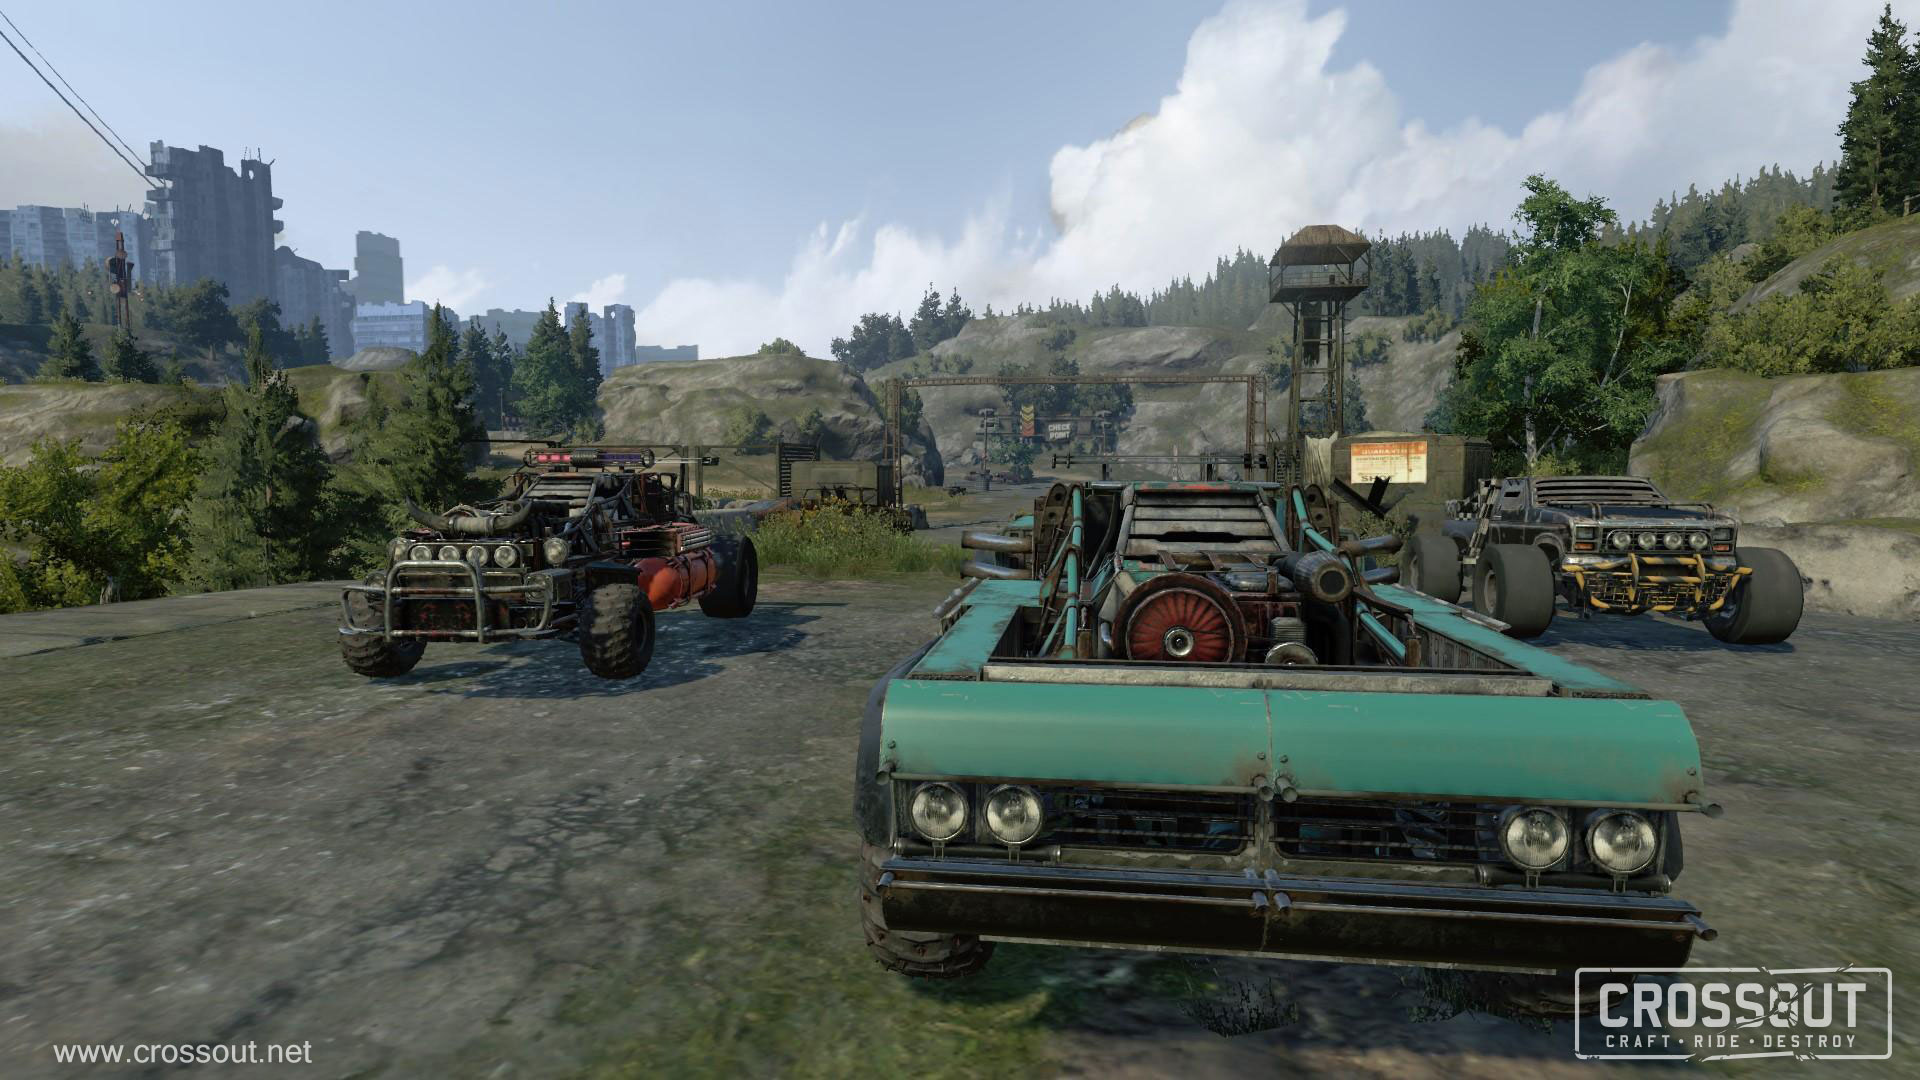 Crossout Game Review - Custom Crafted Destruction (PS4)